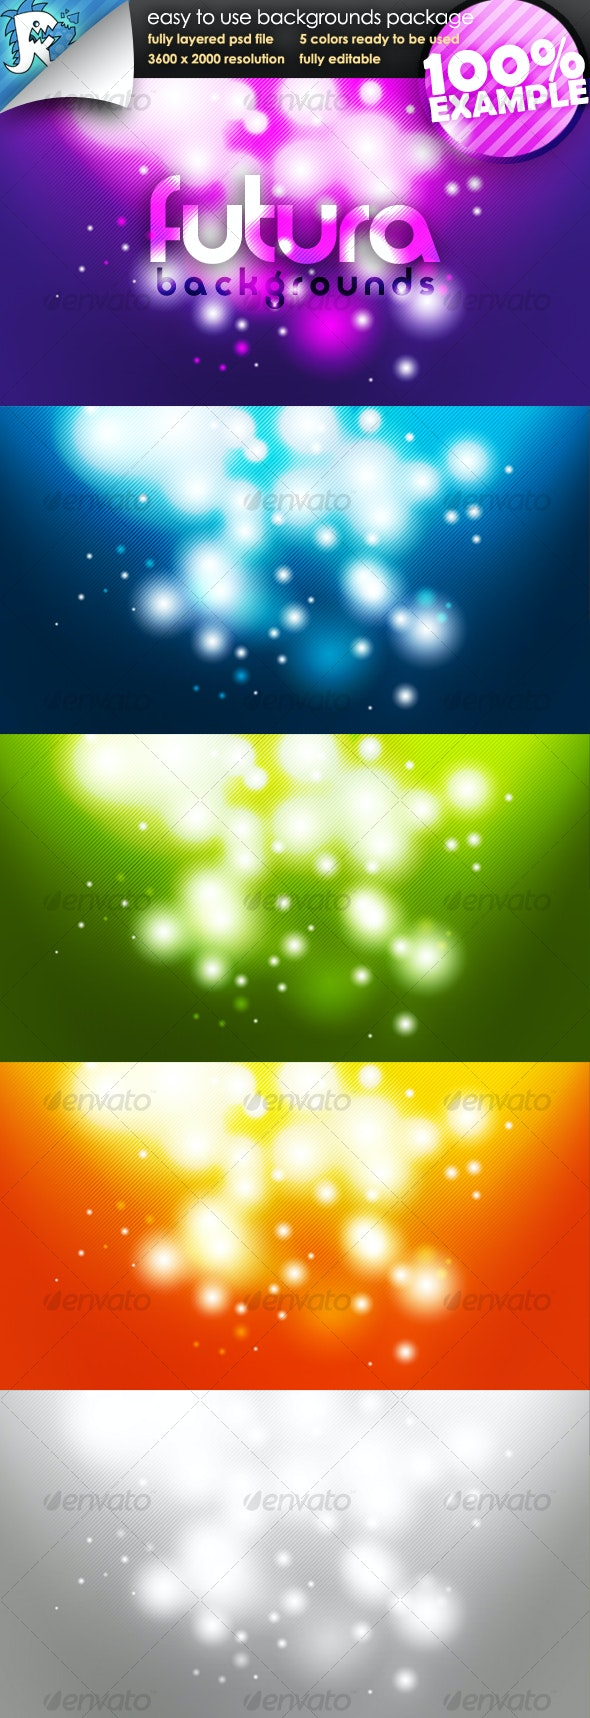 Futura Glow - Easy to use Backgrounds - Backgrounds Graphics